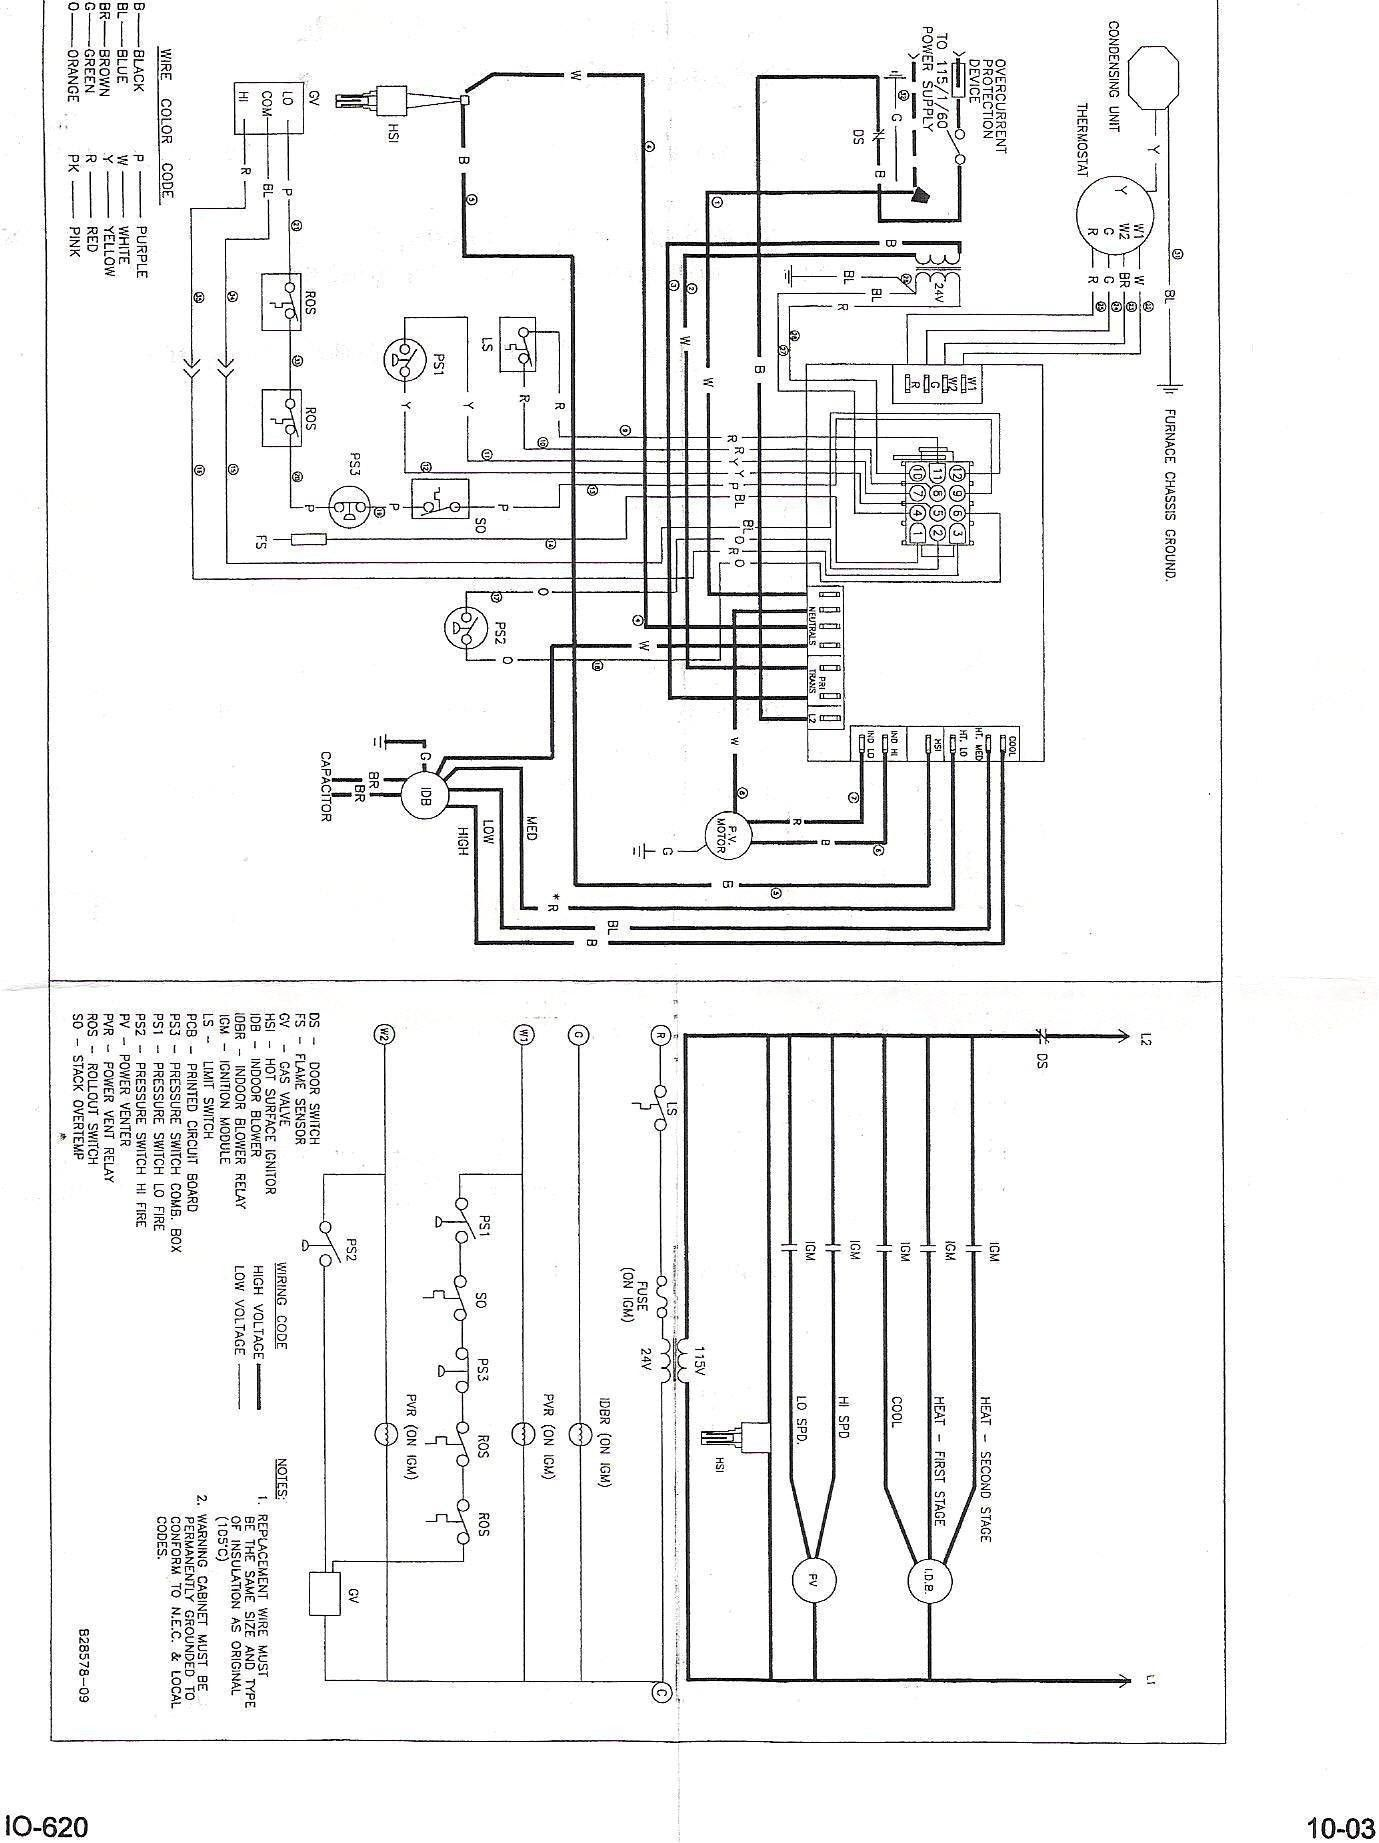 bryant 394f gas furnace schematics wiring diagram blog bryant 394f gas furnace schematics [ 1379 x 1843 Pixel ]